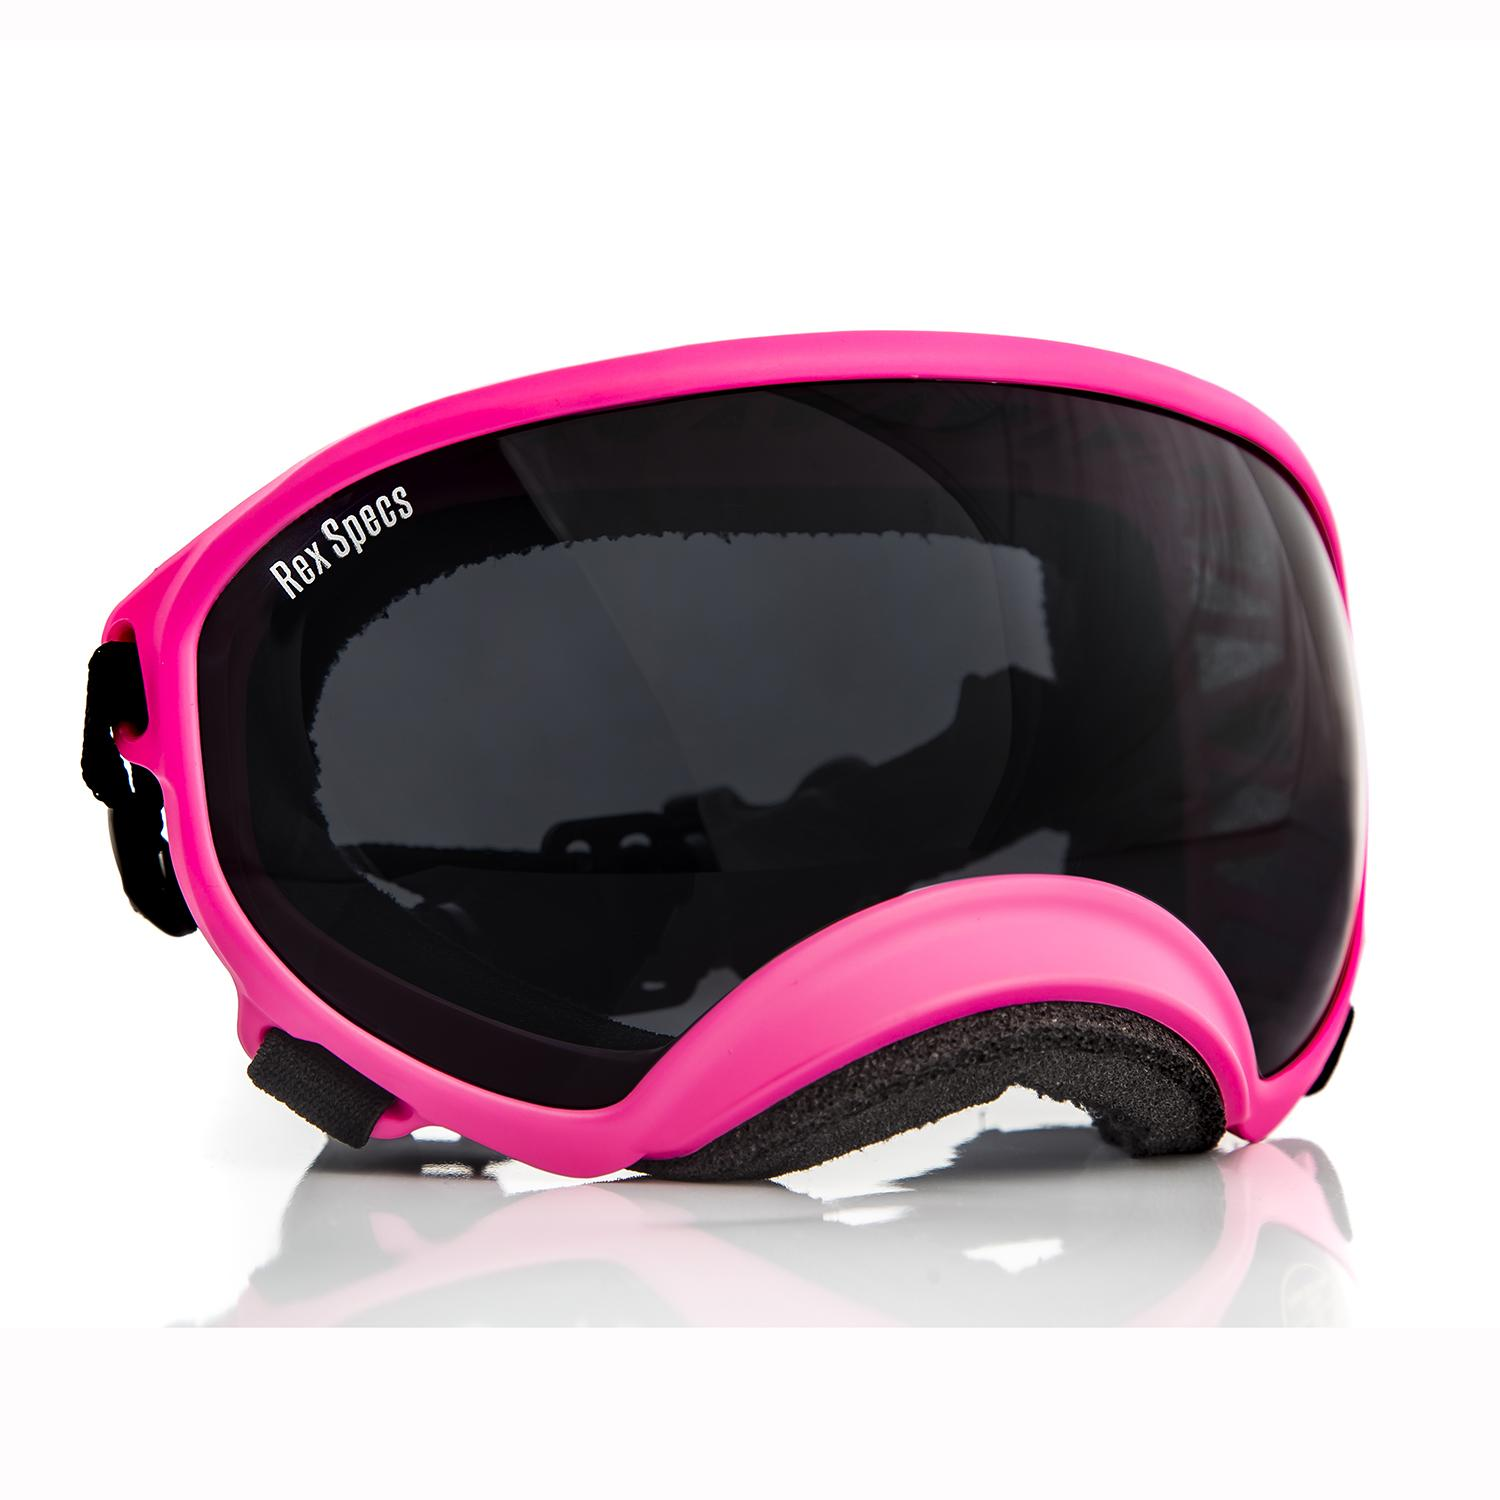 Rex Specs Dog Goggles - Neon Pink with Smoke Lens